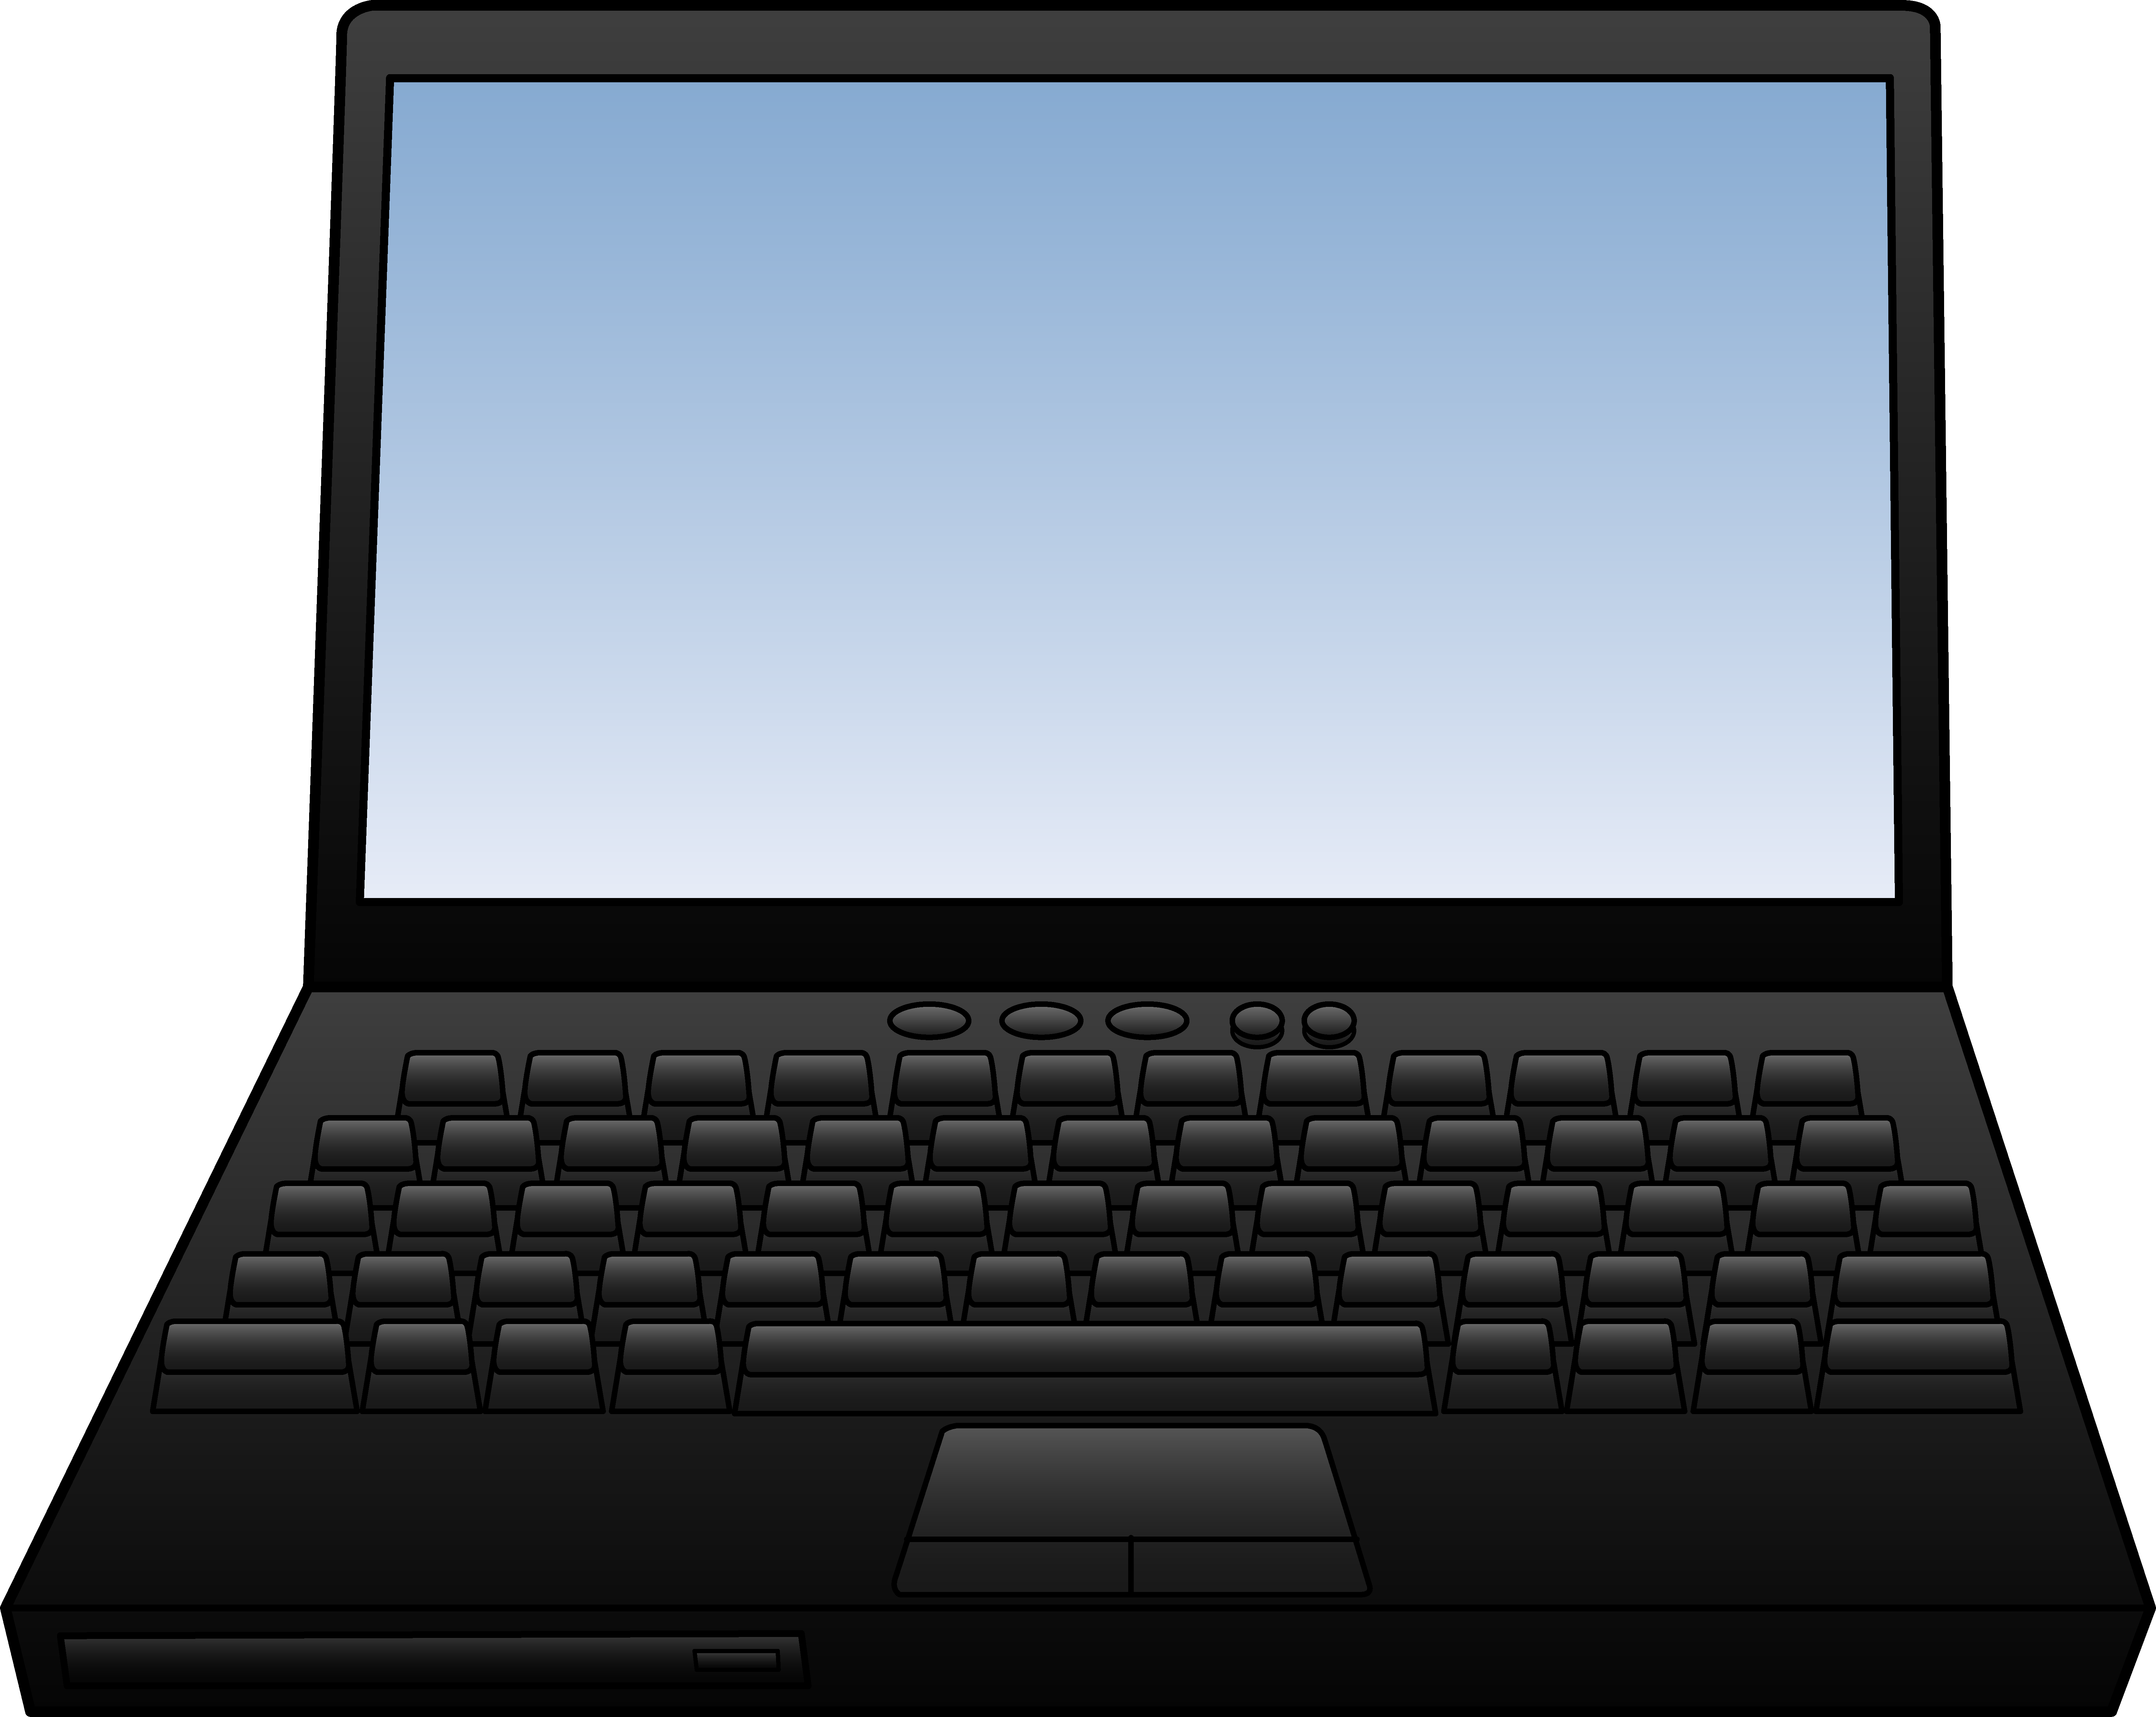 Computers clipart notebook. Laptop computer design free